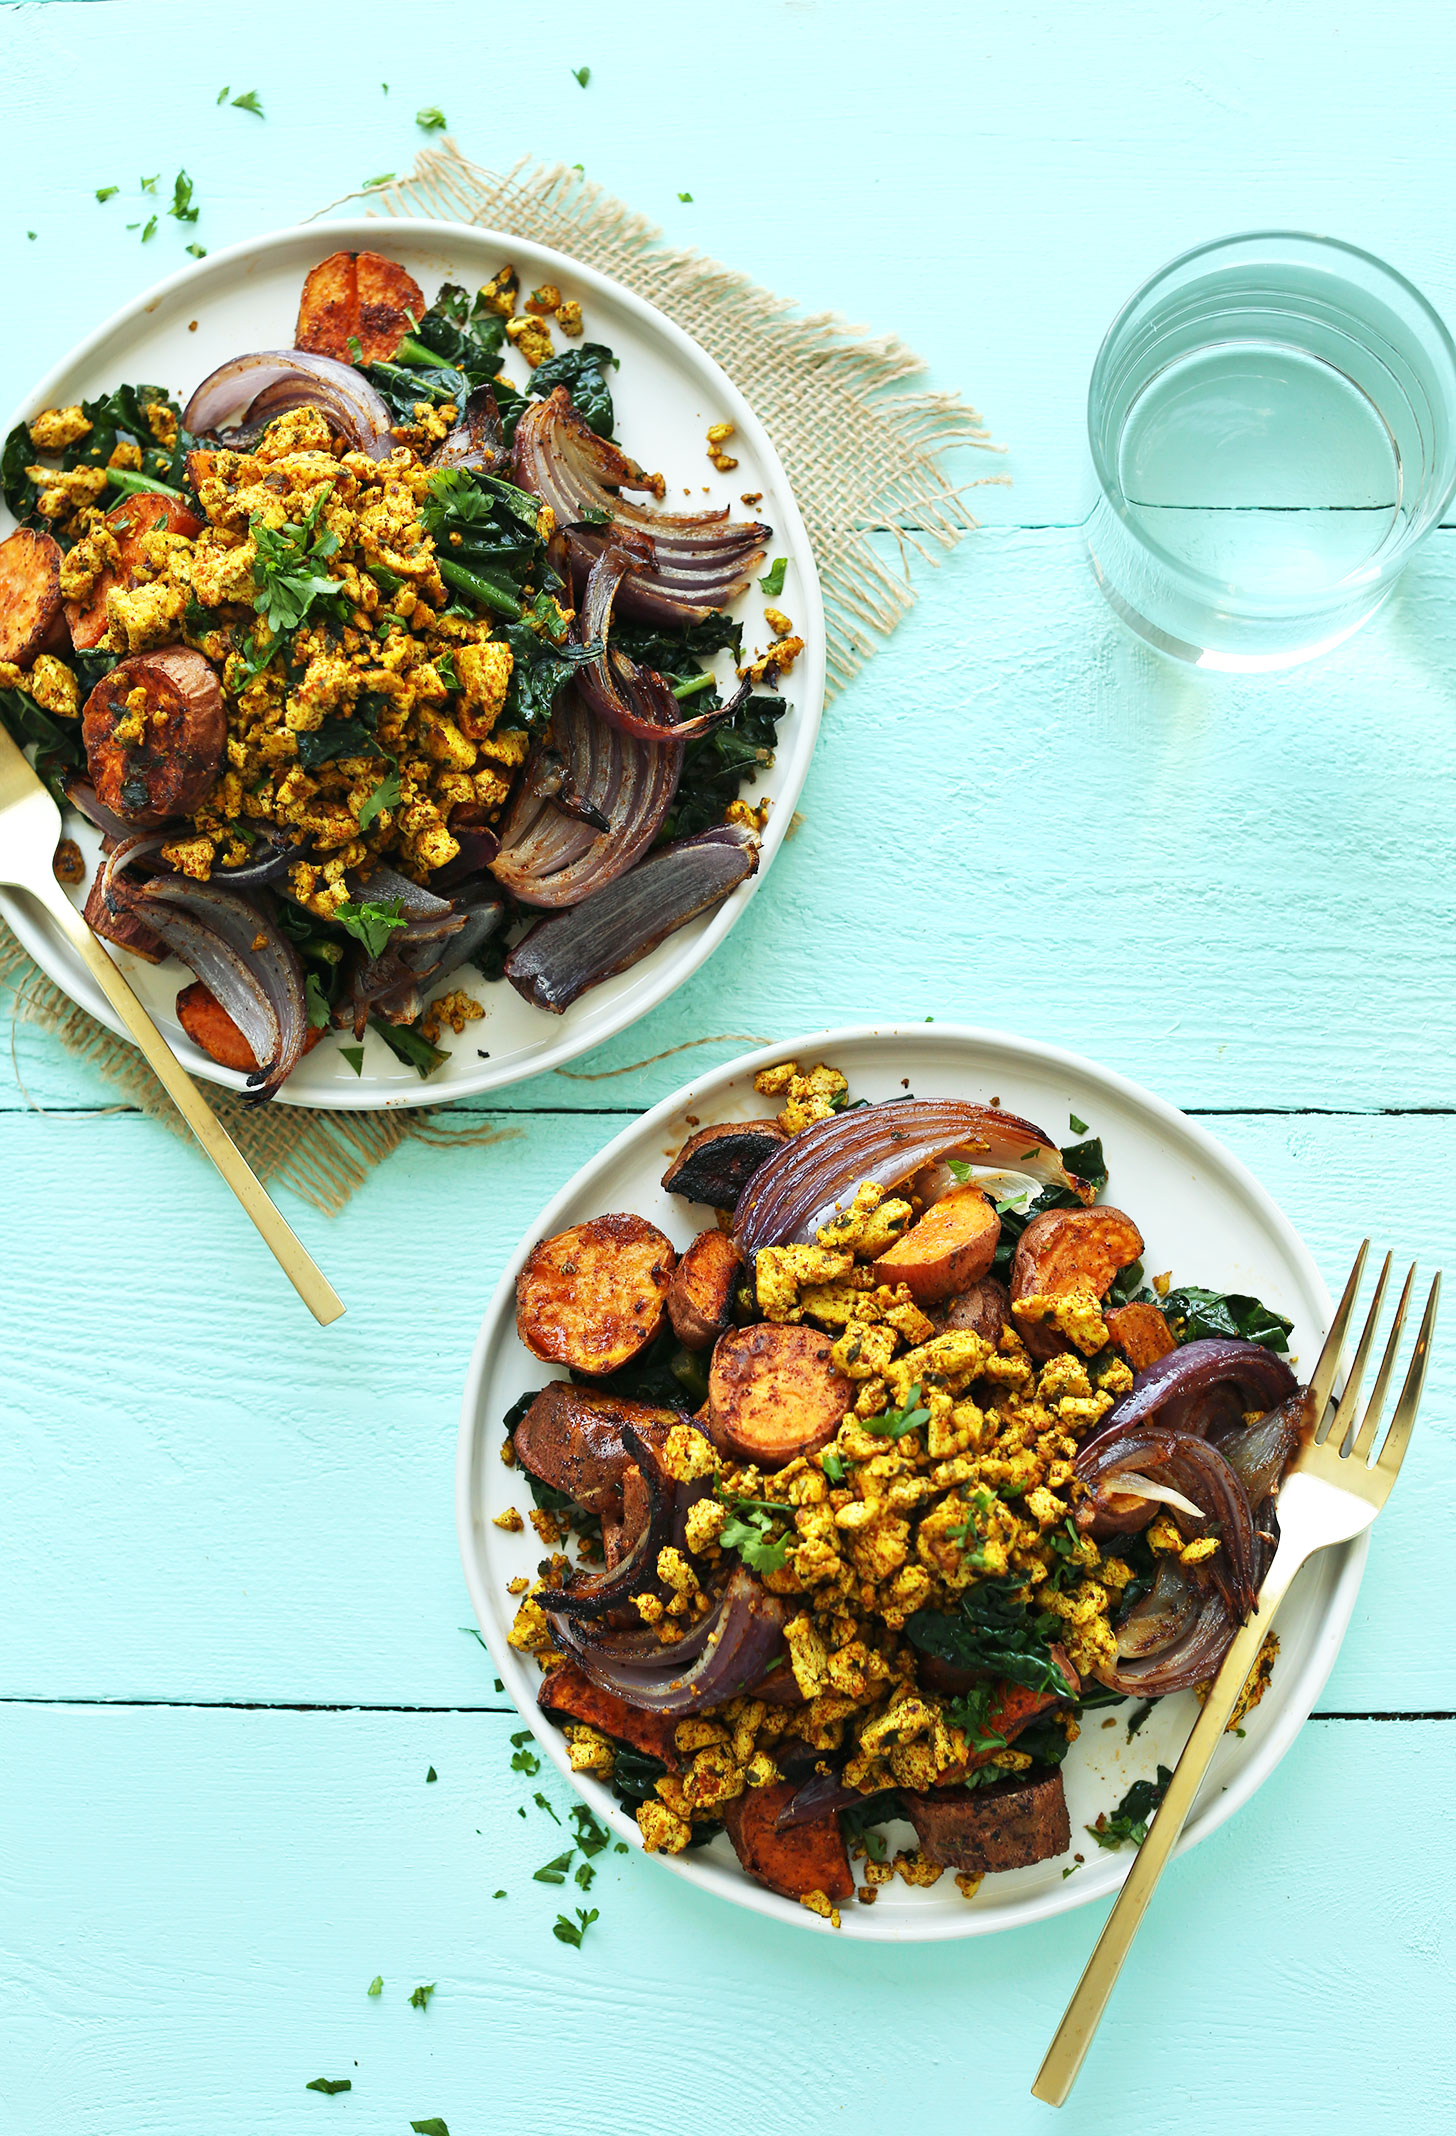 Two plates of our super healthy vegan breakfast of Savory Tofu Scramble with Kale, Sweet Potatoes, and Roasted Red Onion